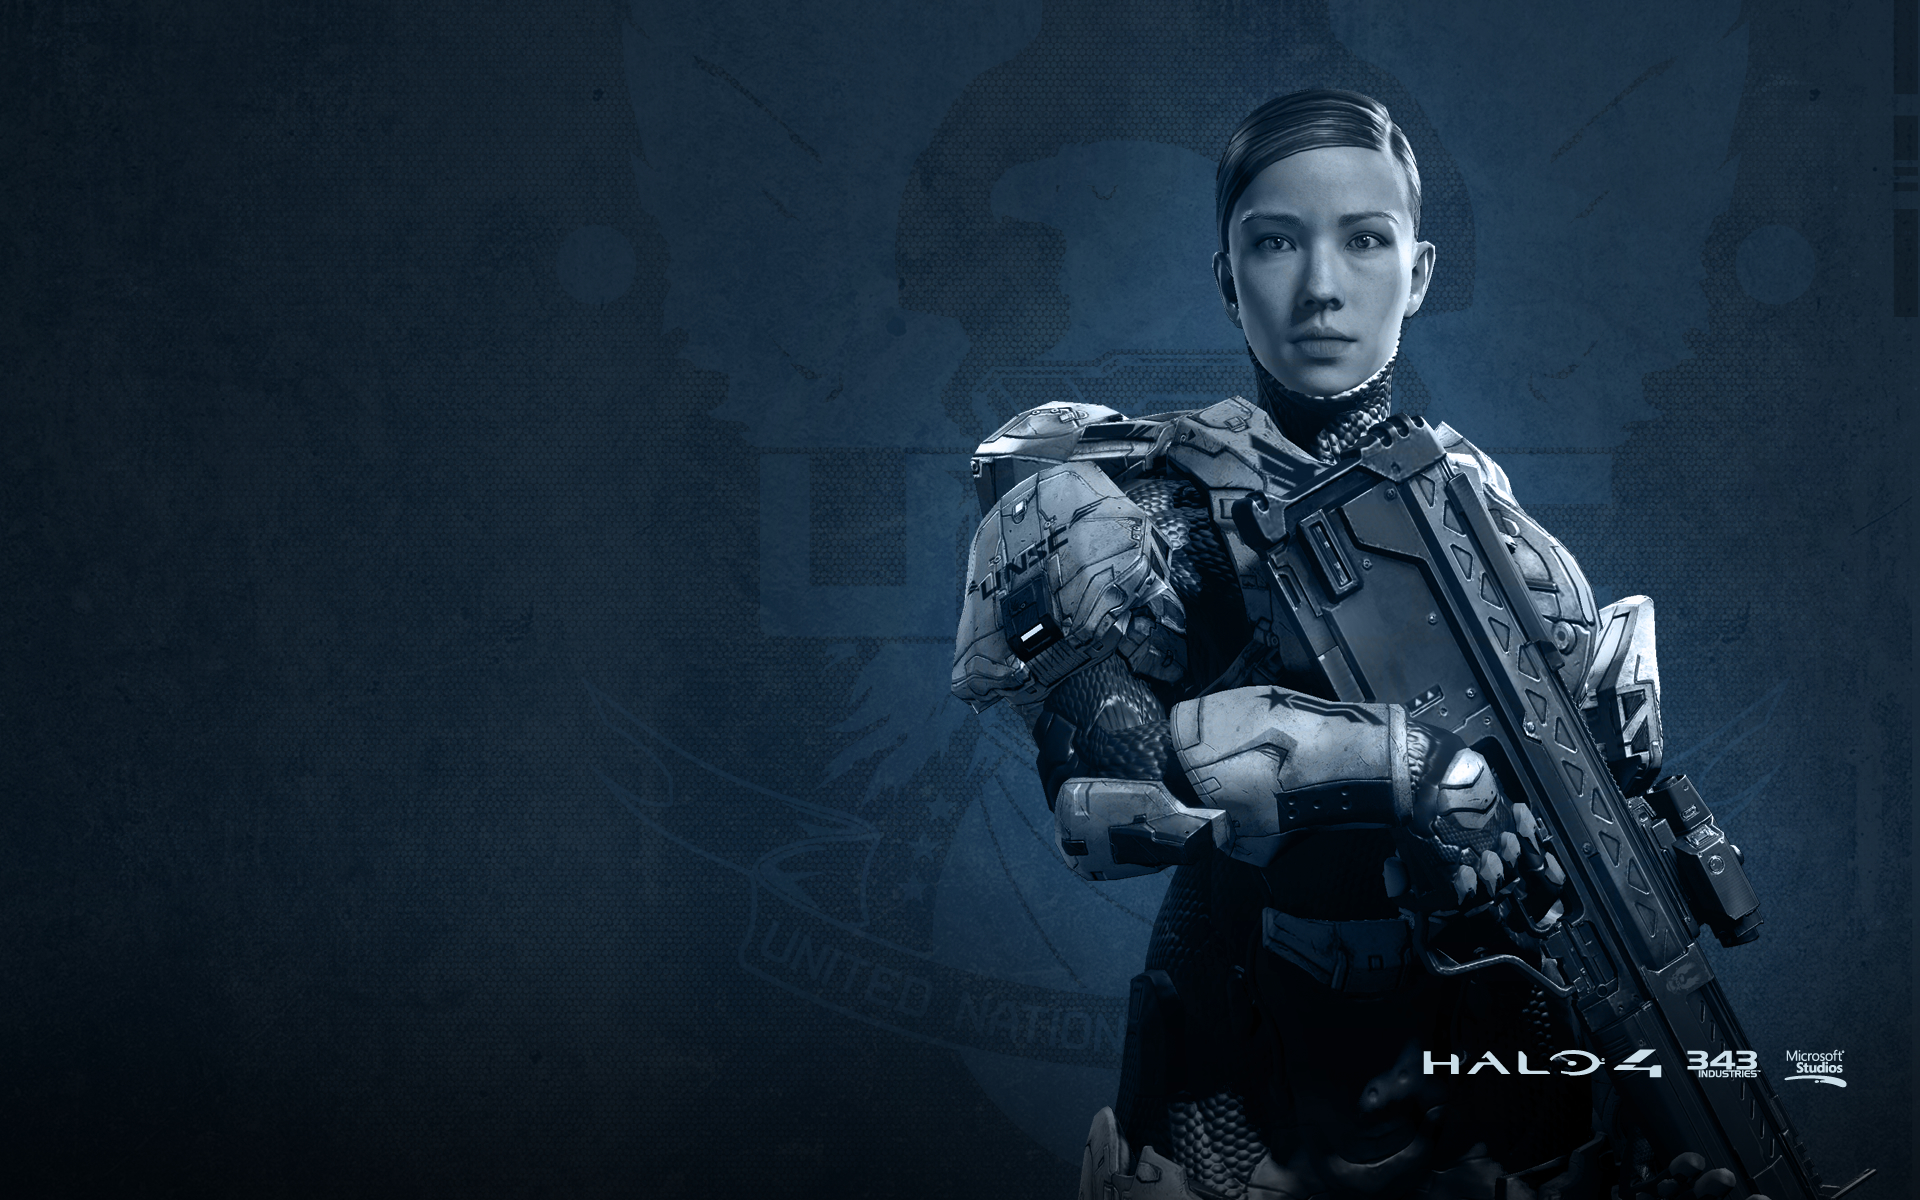 Halo 4 Wallpapers 5